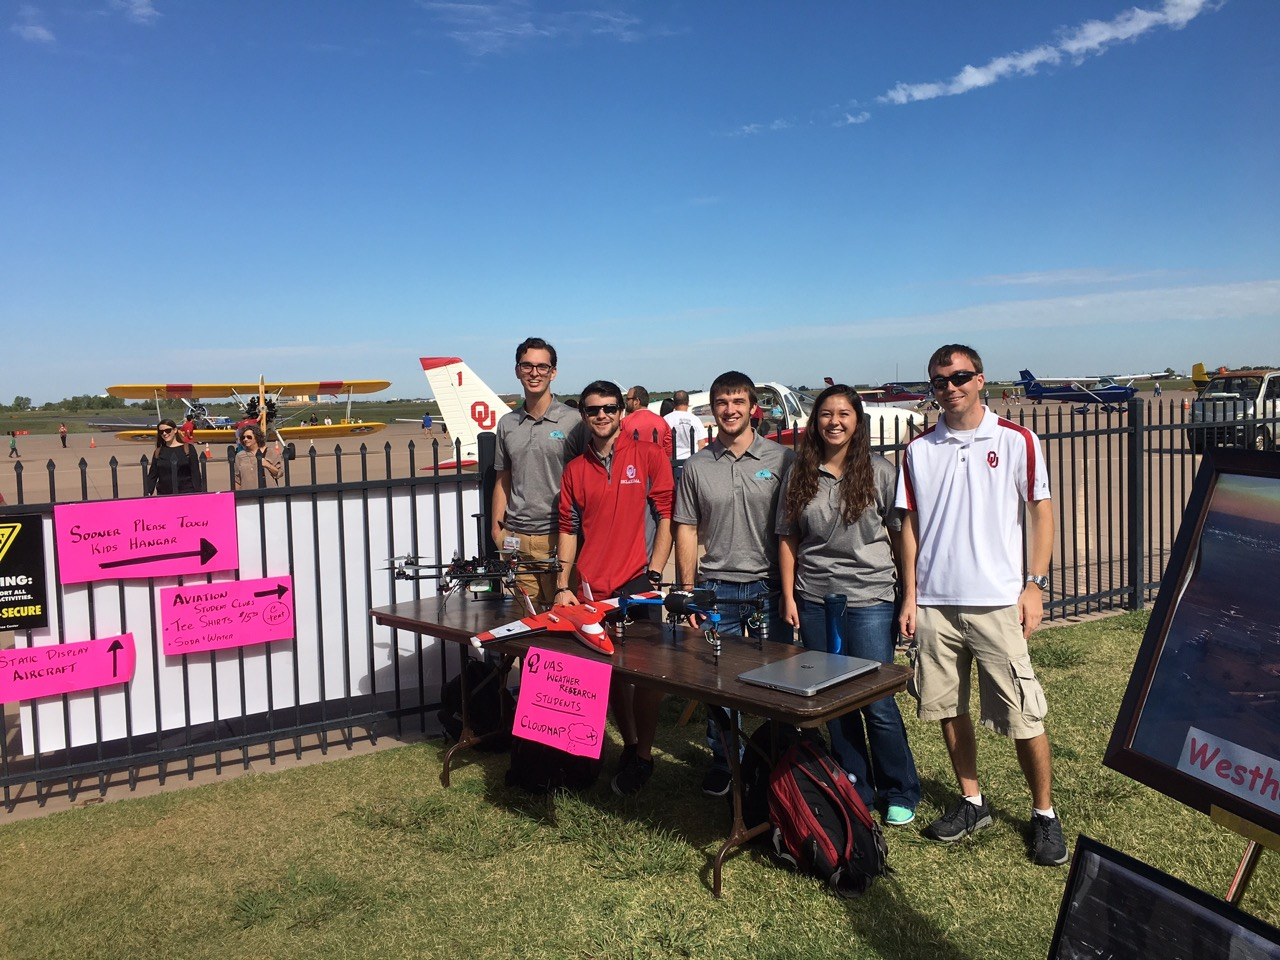 Chilson and team represent OU at 10th Annual Aviation Festival